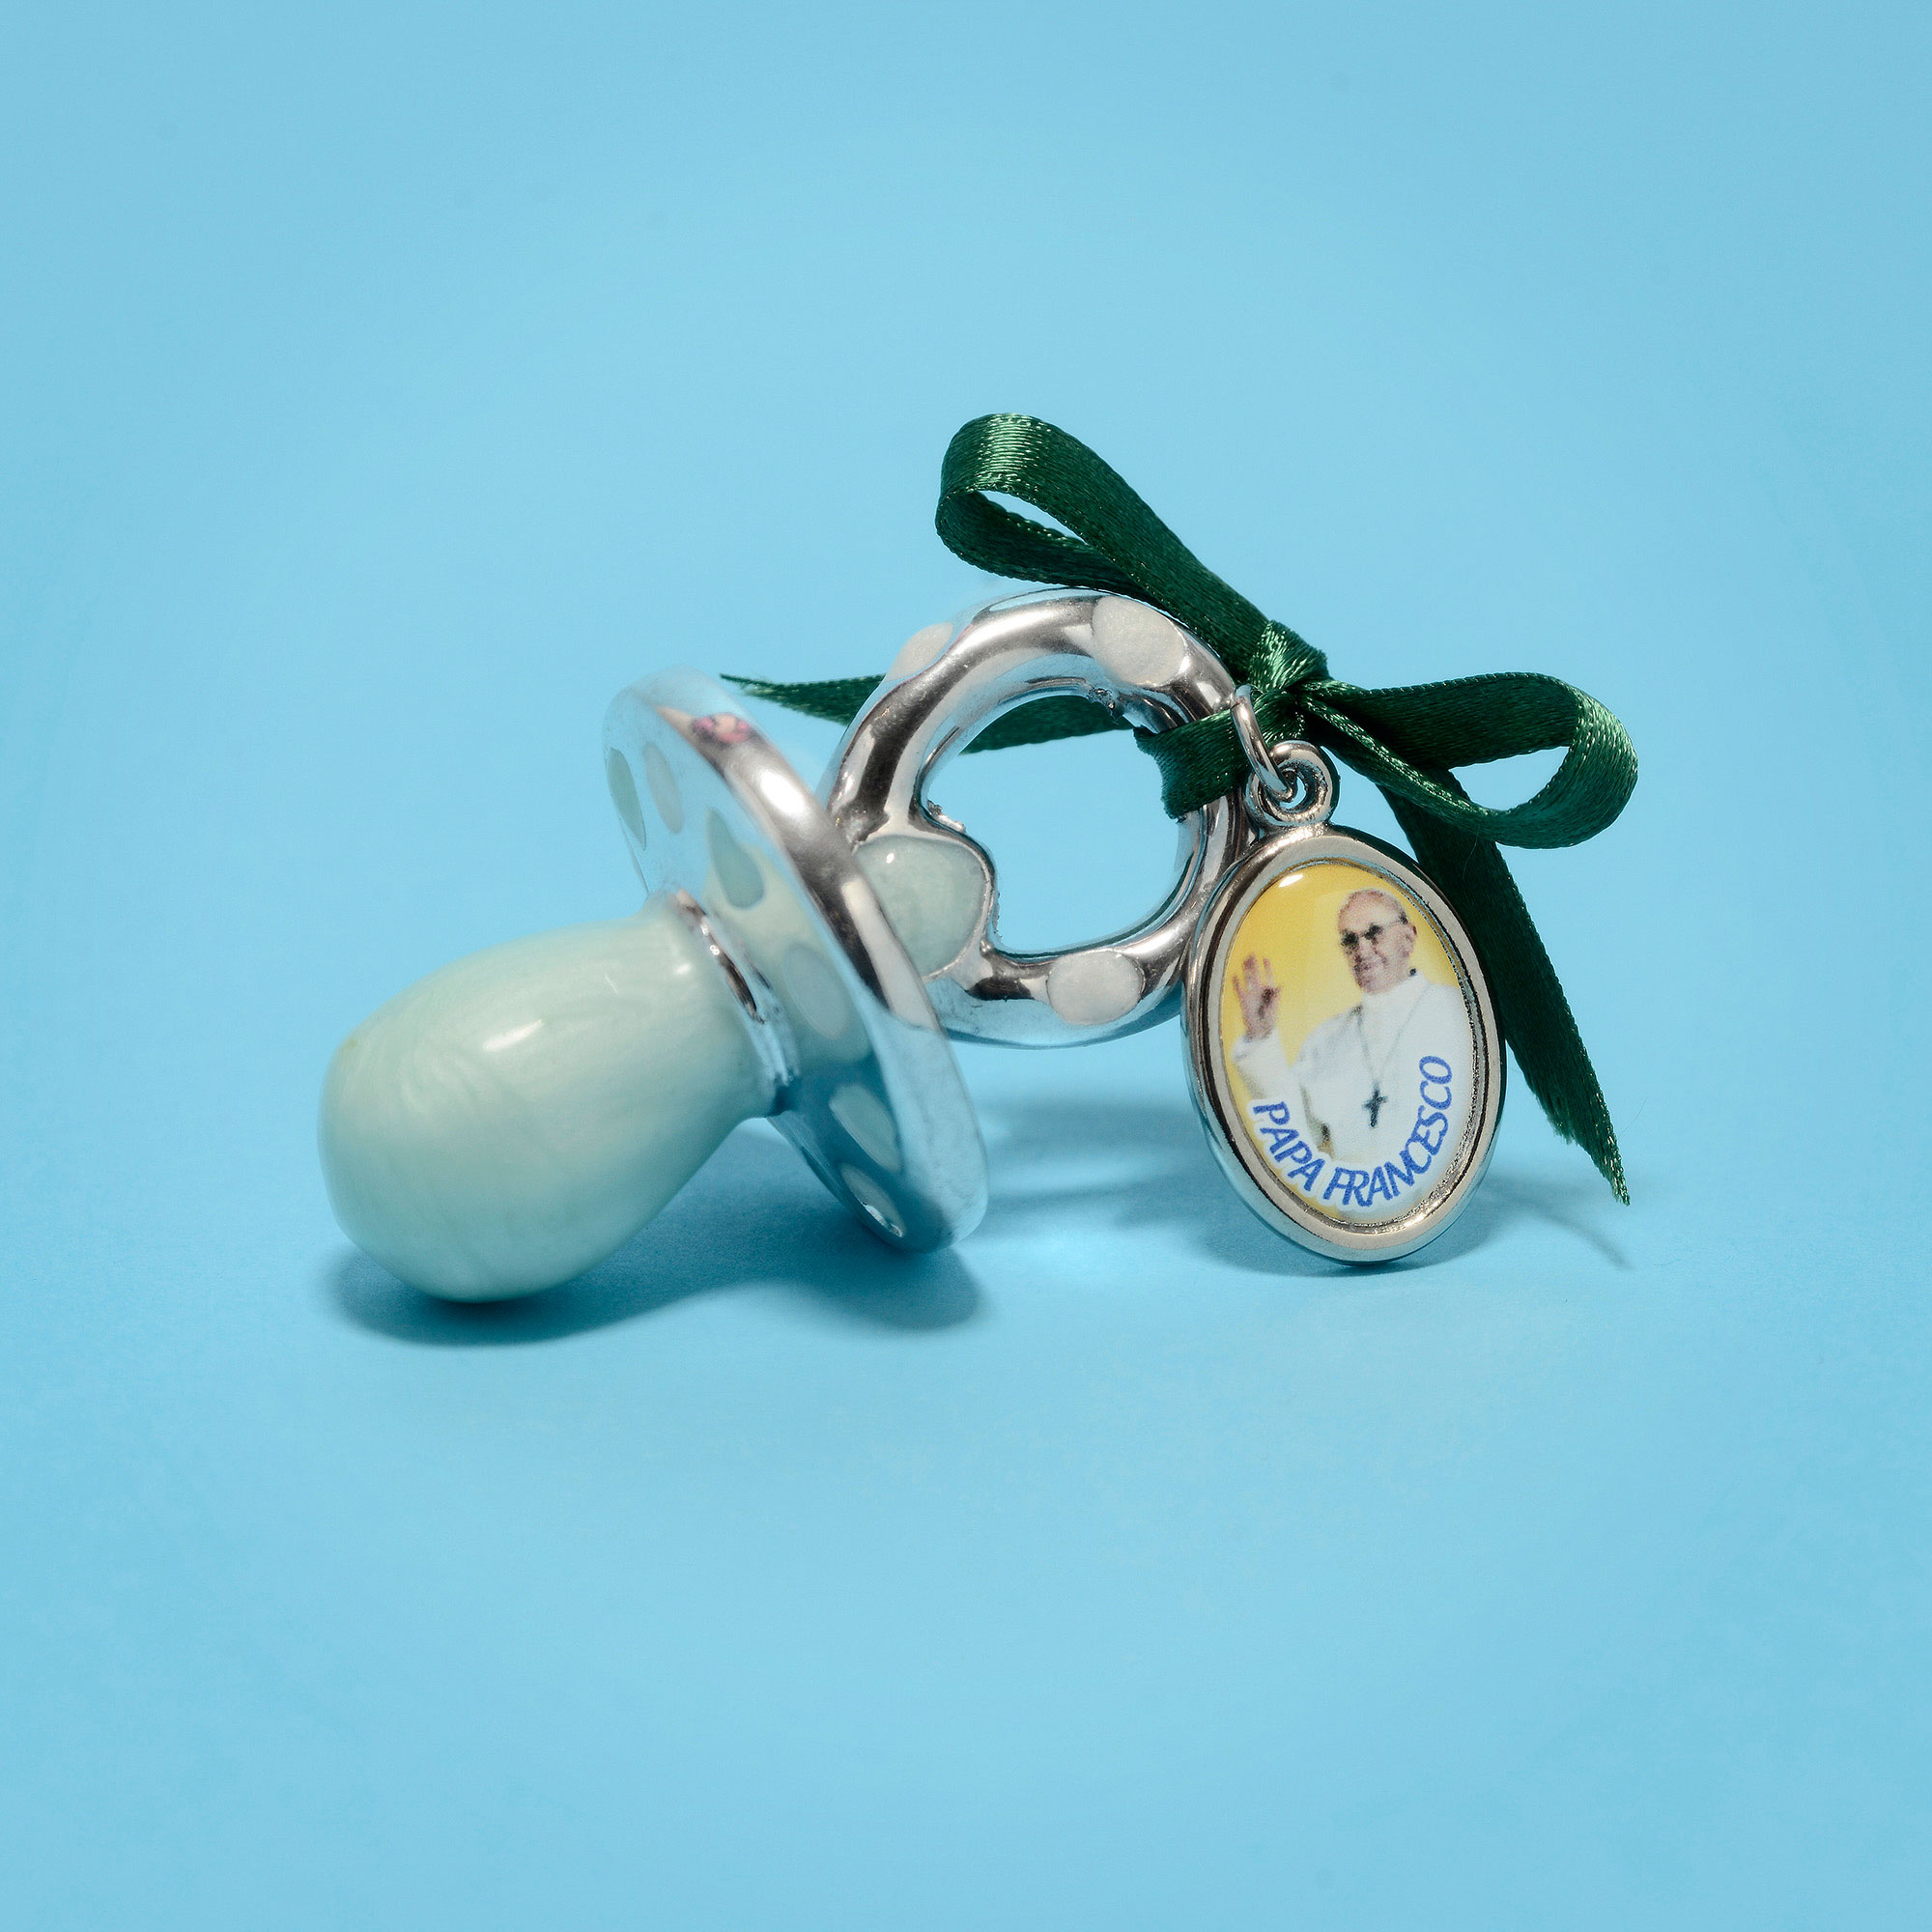 Ceramic pacifier with Pope Francis's small medal.